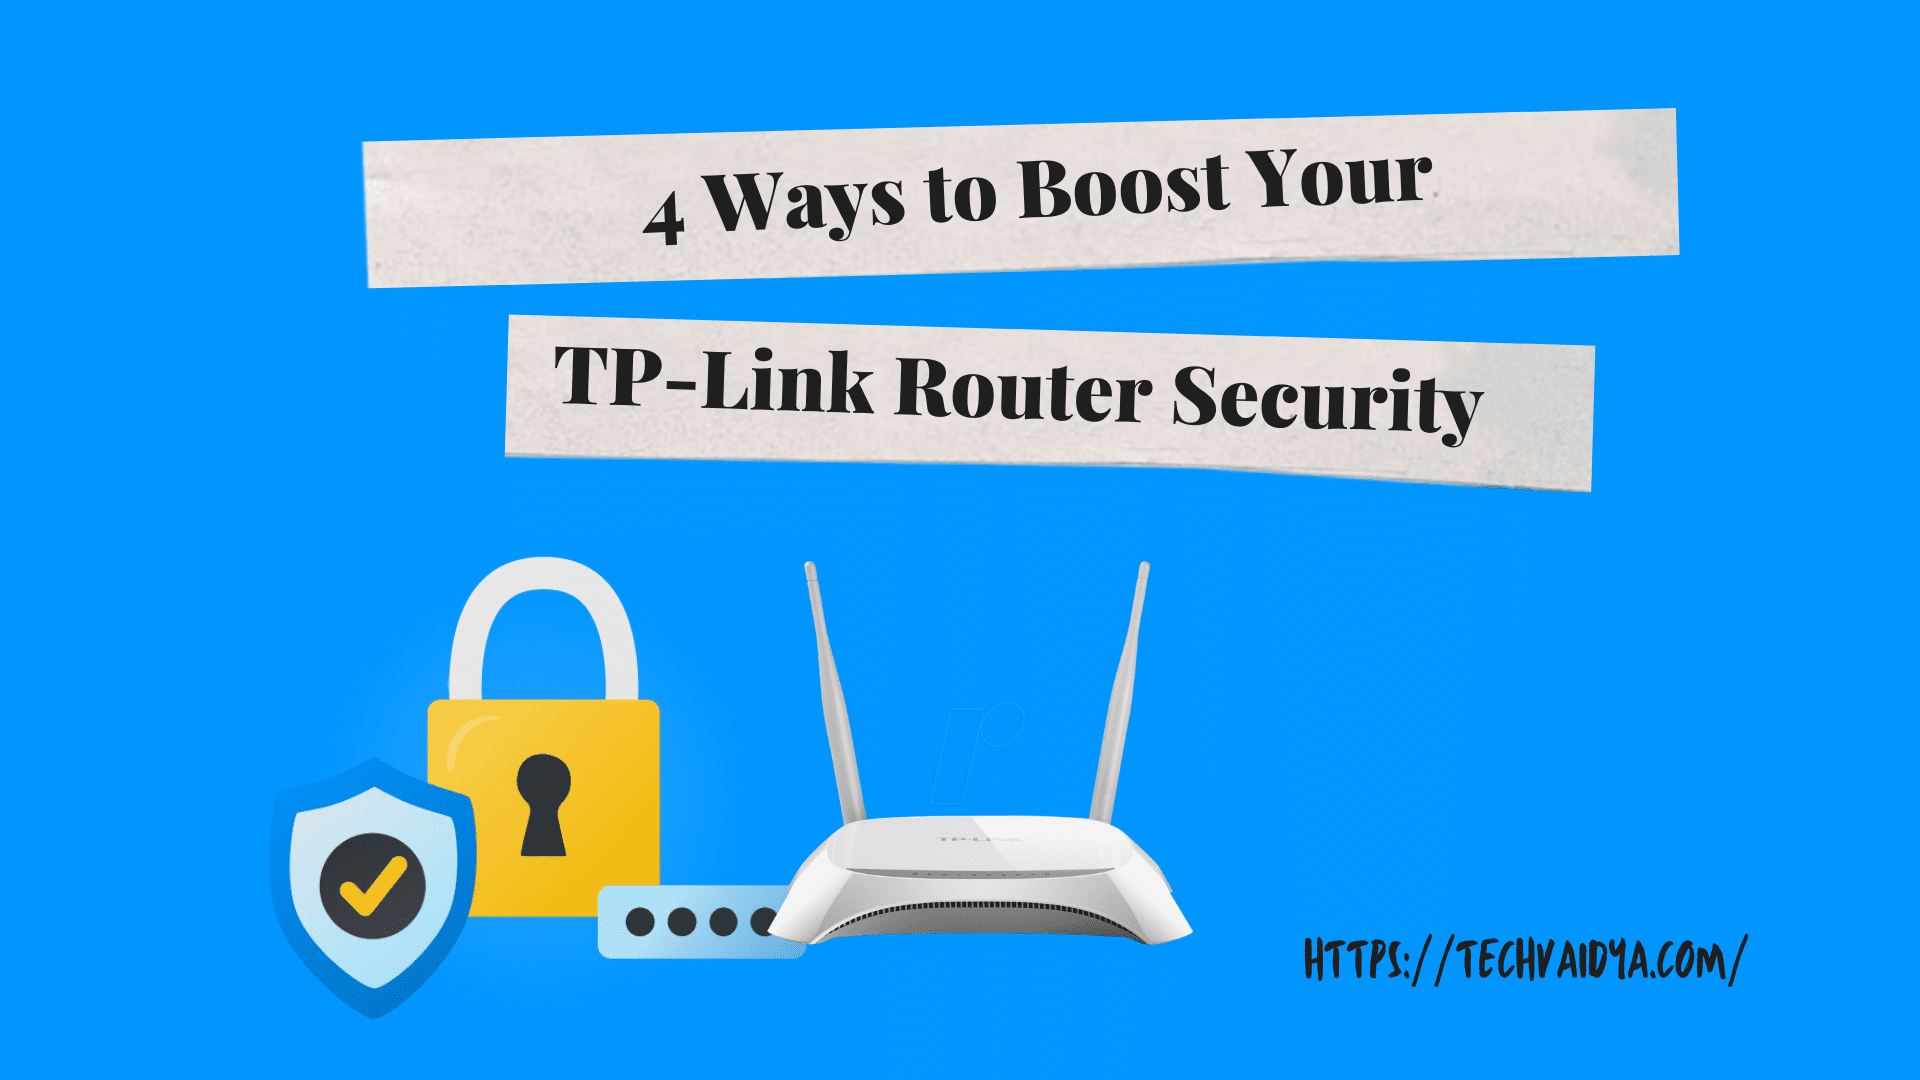 4 Ways to Boost TP-Link Router Security